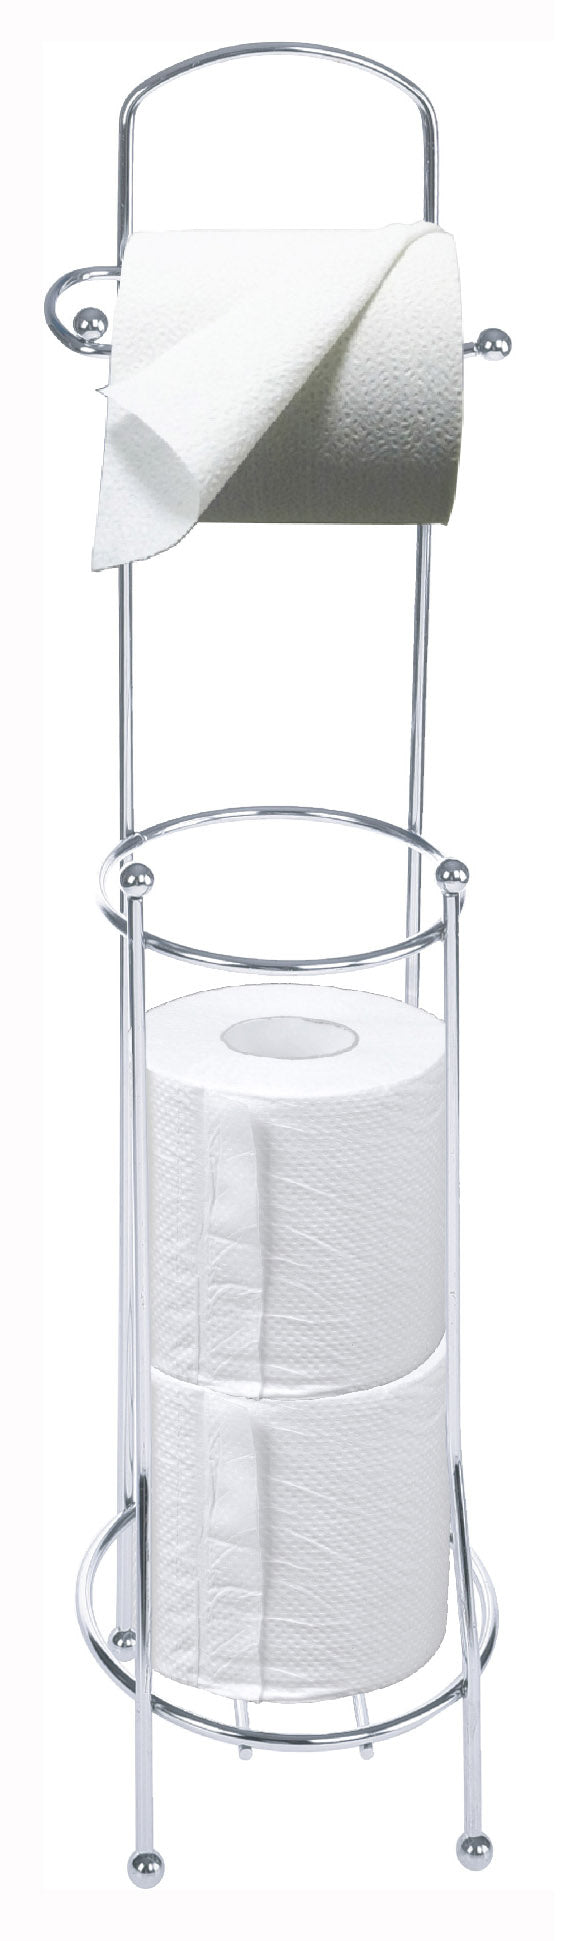 #2134-B Free-standing Toilet Paper Holder & Reserve (case pack 12 pcs)